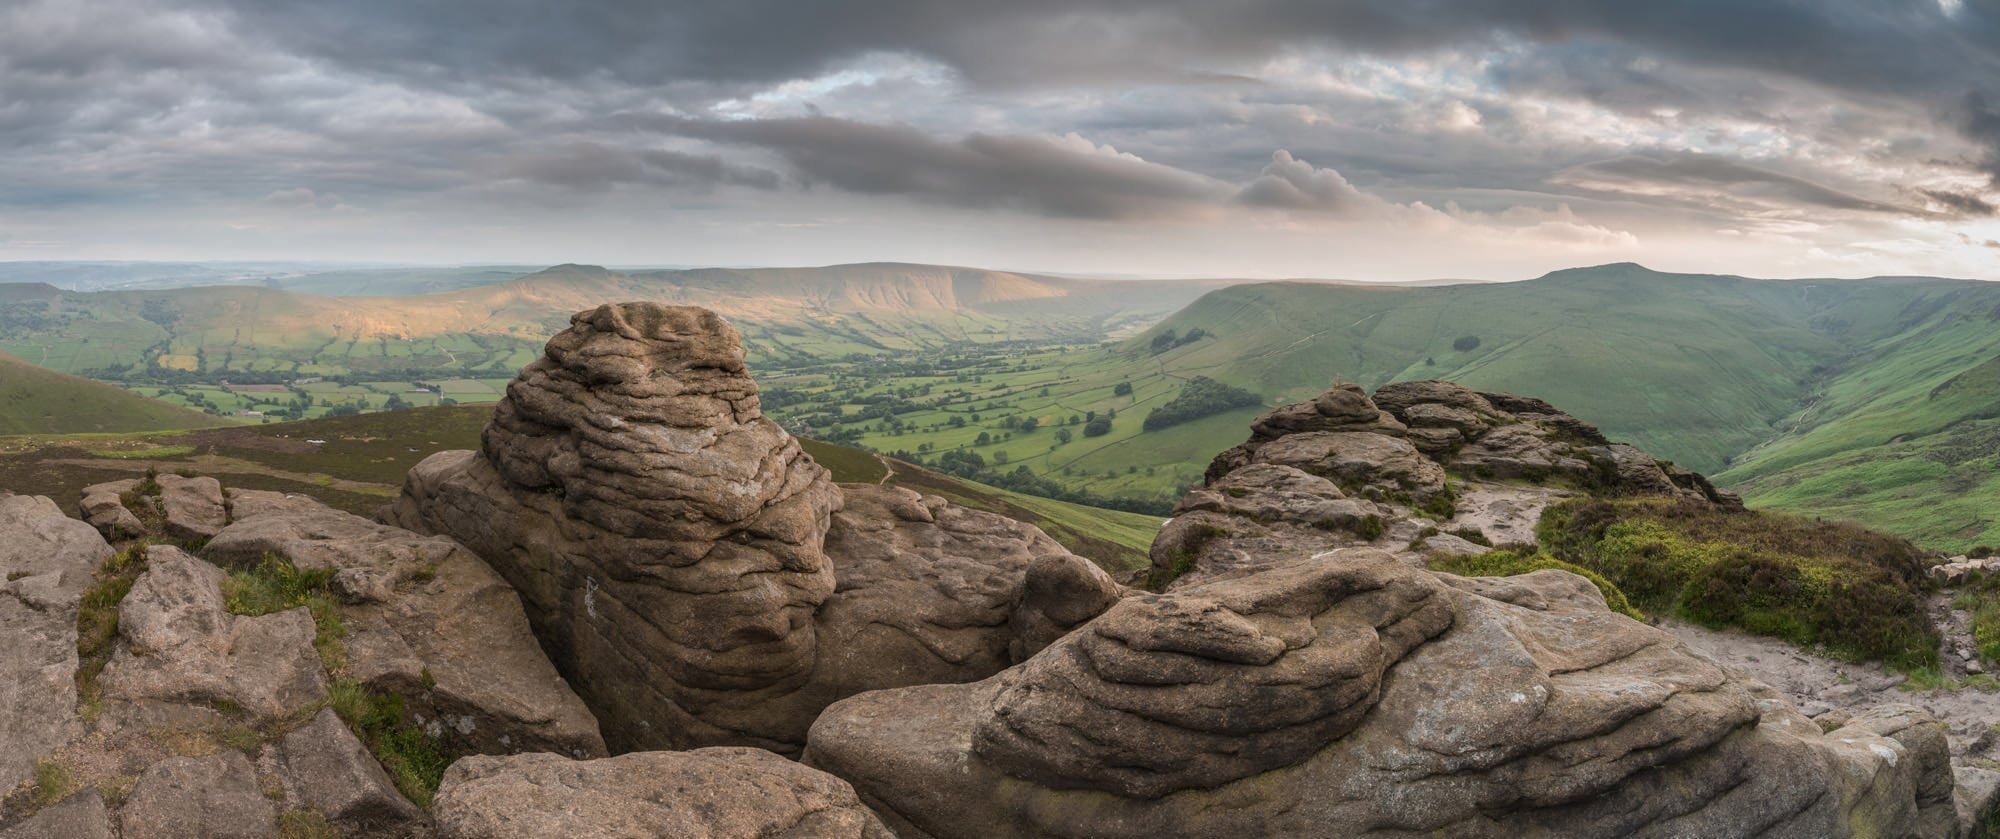 Ringing Roger to Edale Sunset - Peak District Photography